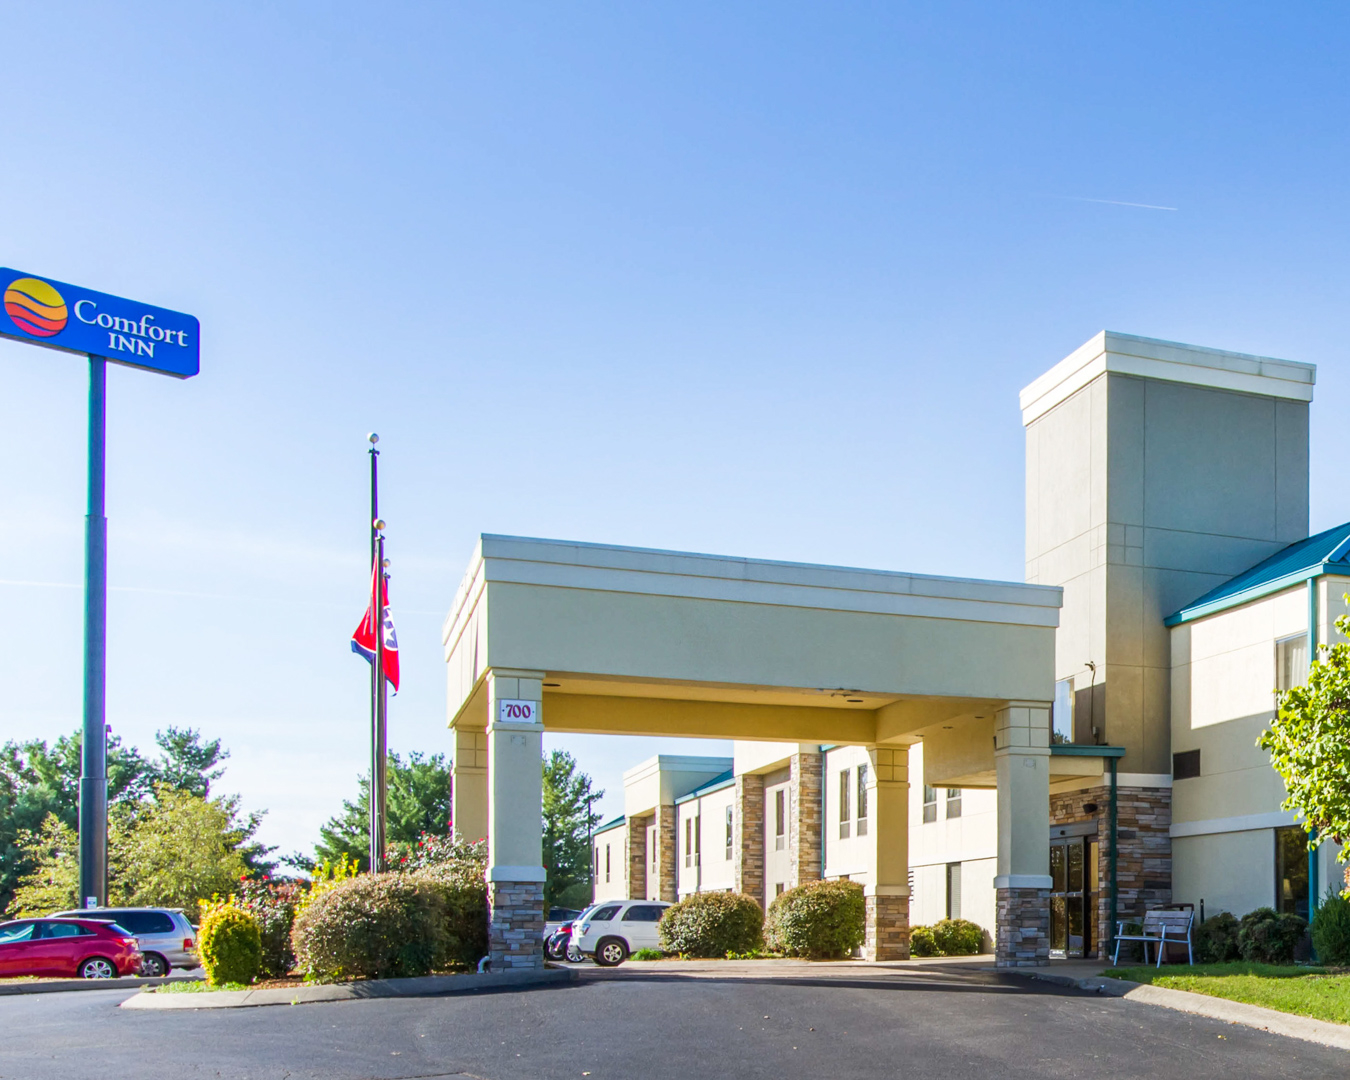 Comfort inn coupons clarksville tn near me 8coupons for Hotels 8 near me